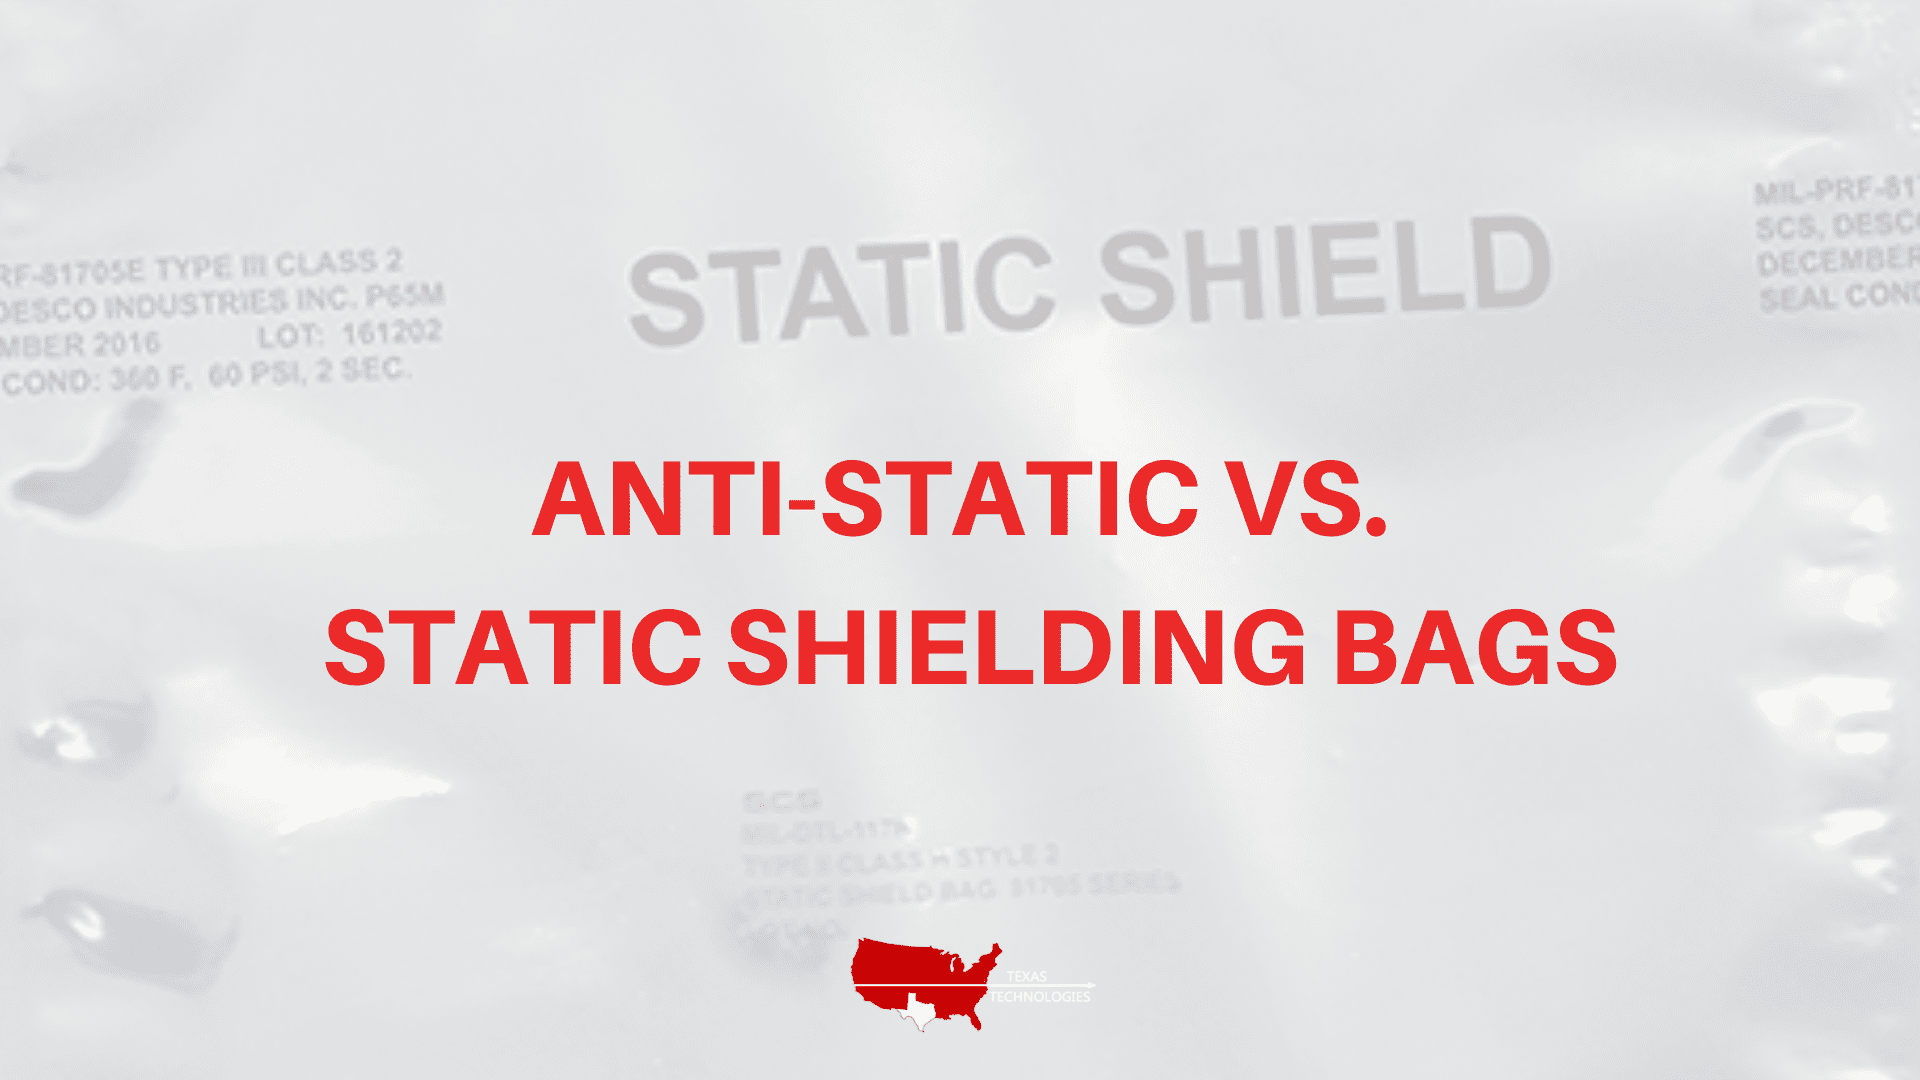 What's the Difference Between Anti-Static and Static Shielding Bags?